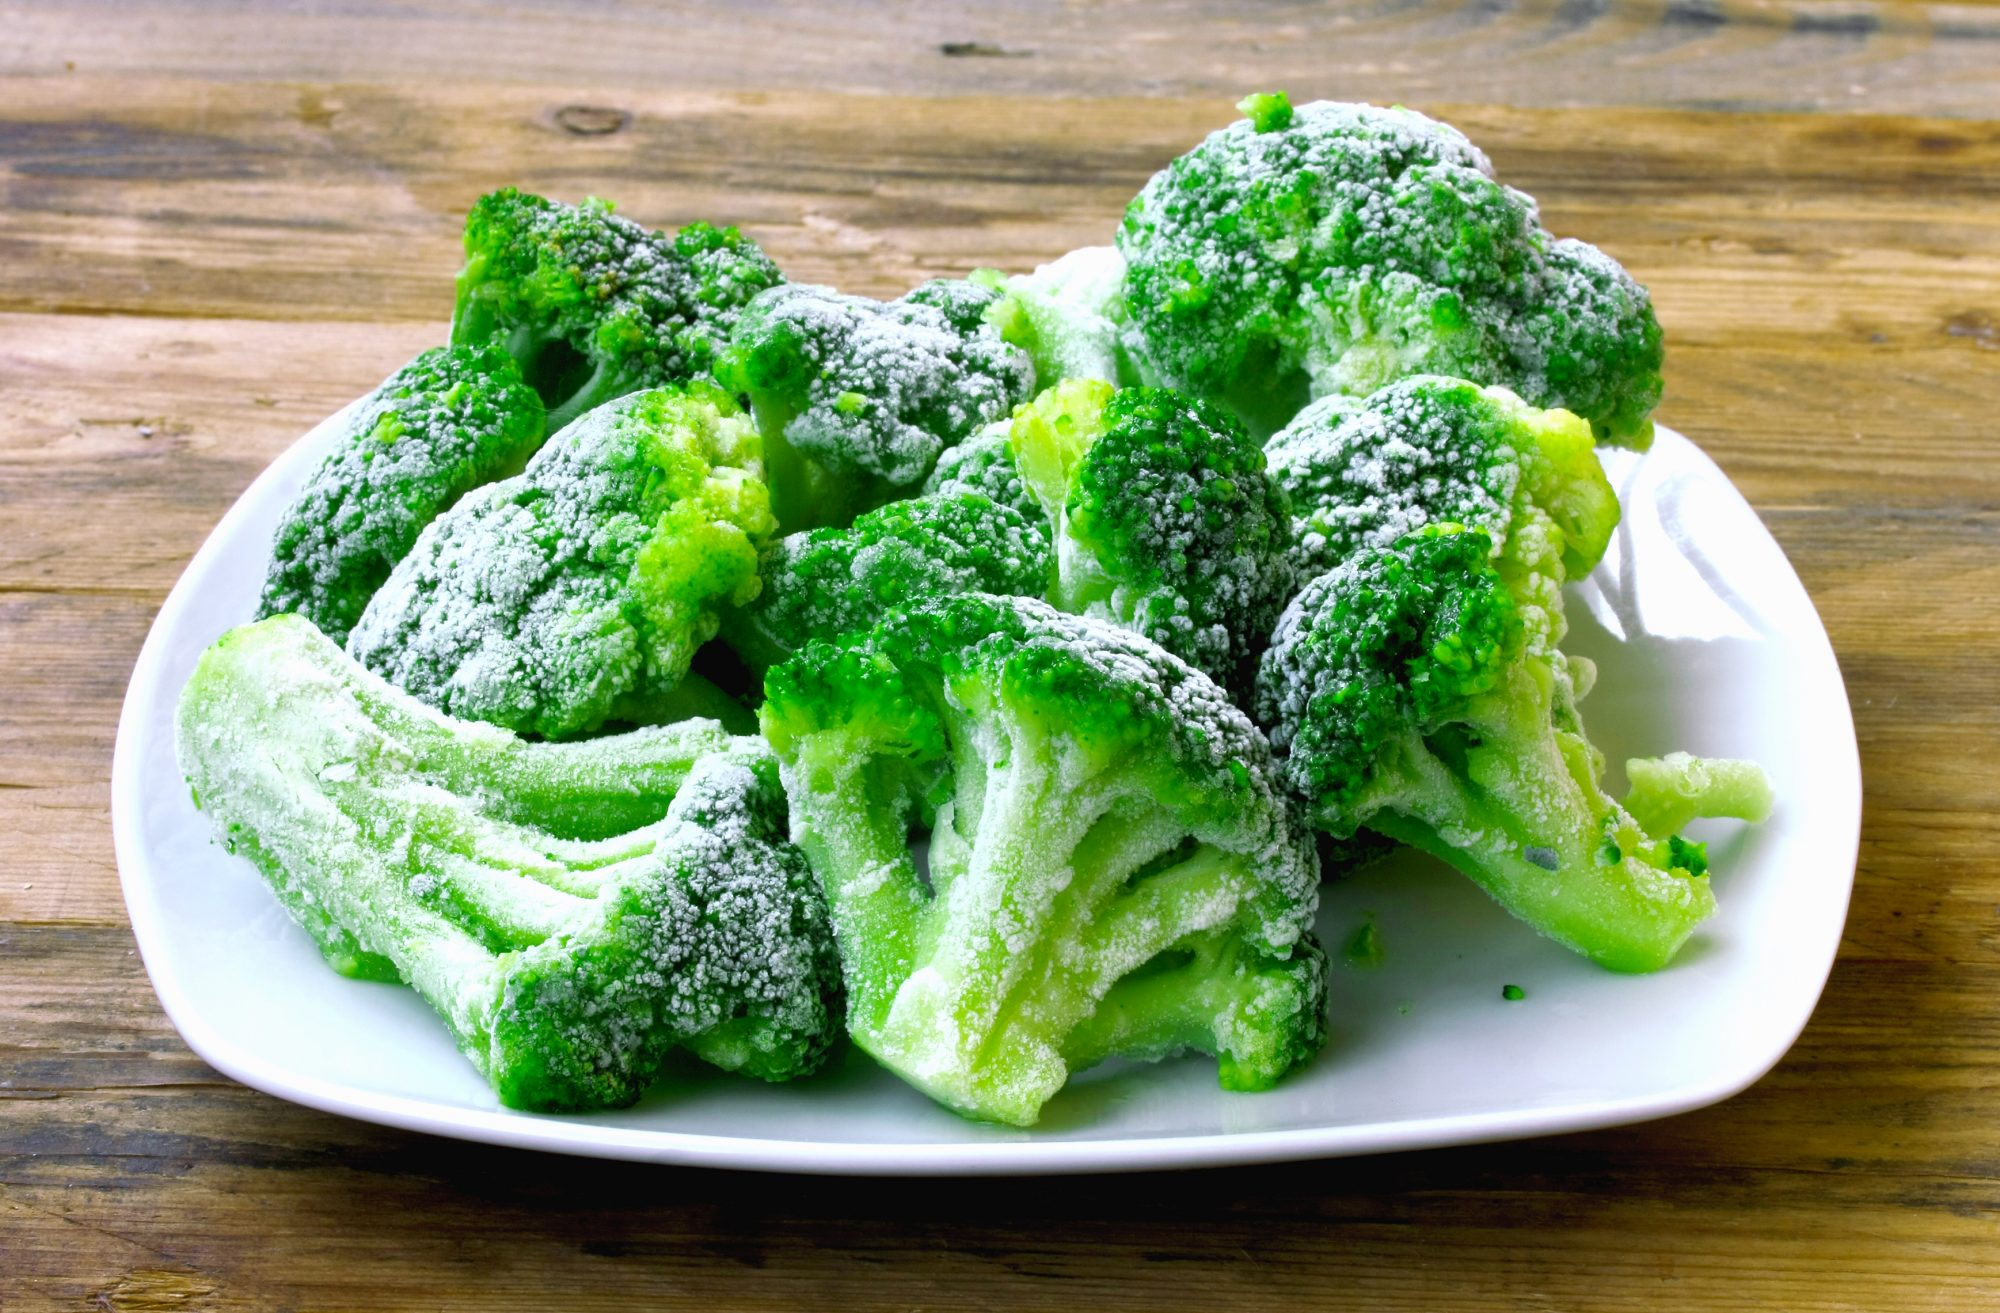 Fresh frozen broccoli on white plate, wooden table, healthy diet food, closeup